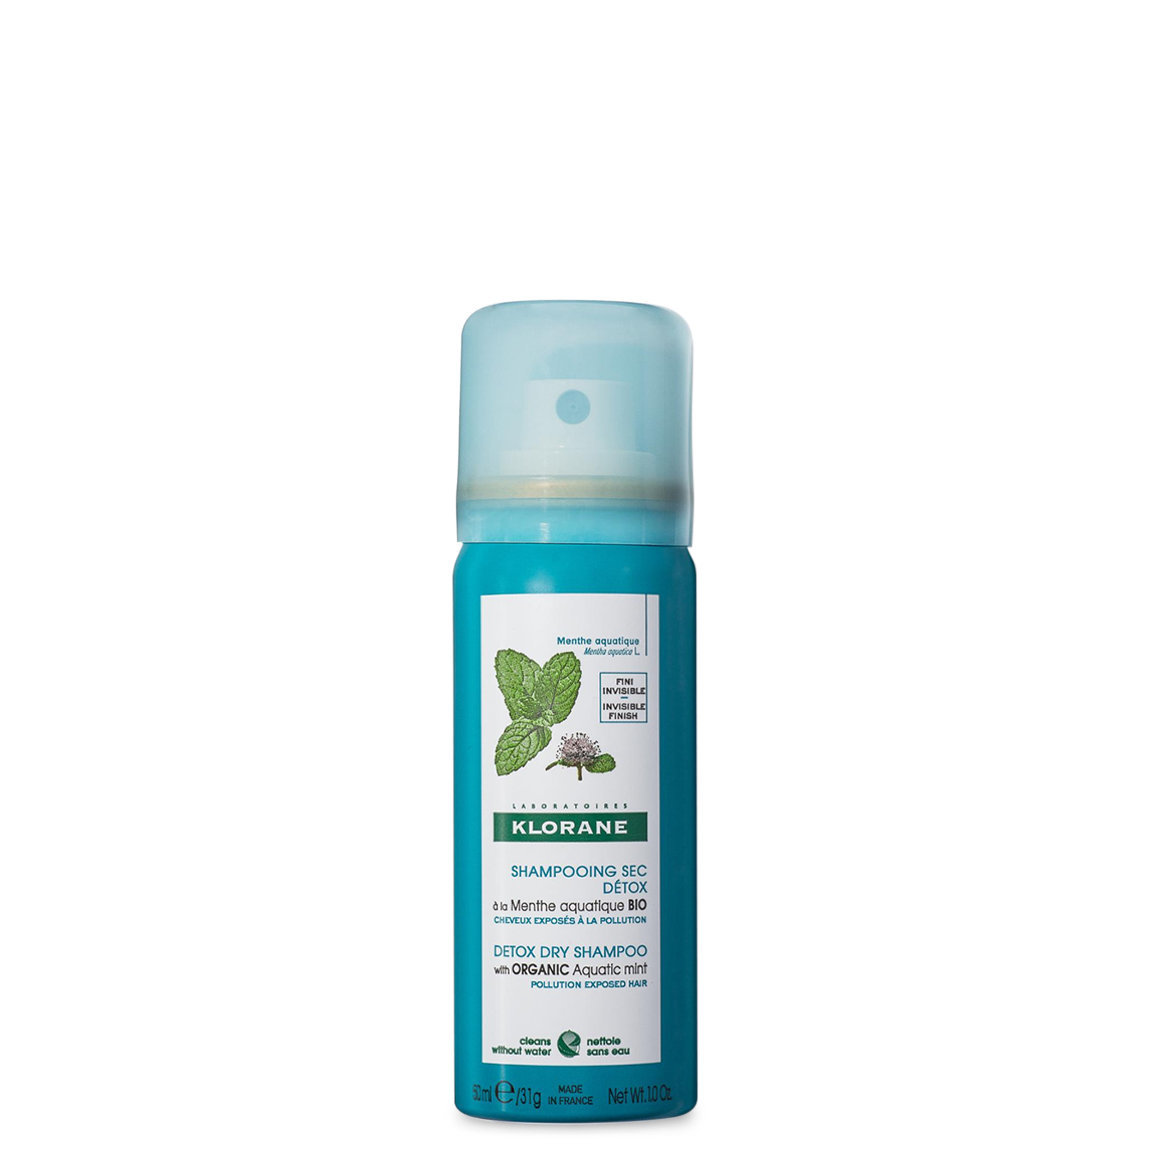 Klorane Detox Dry Shampoo with Aquatic Mint 1.0 oz alternative view 1 - product swatch.